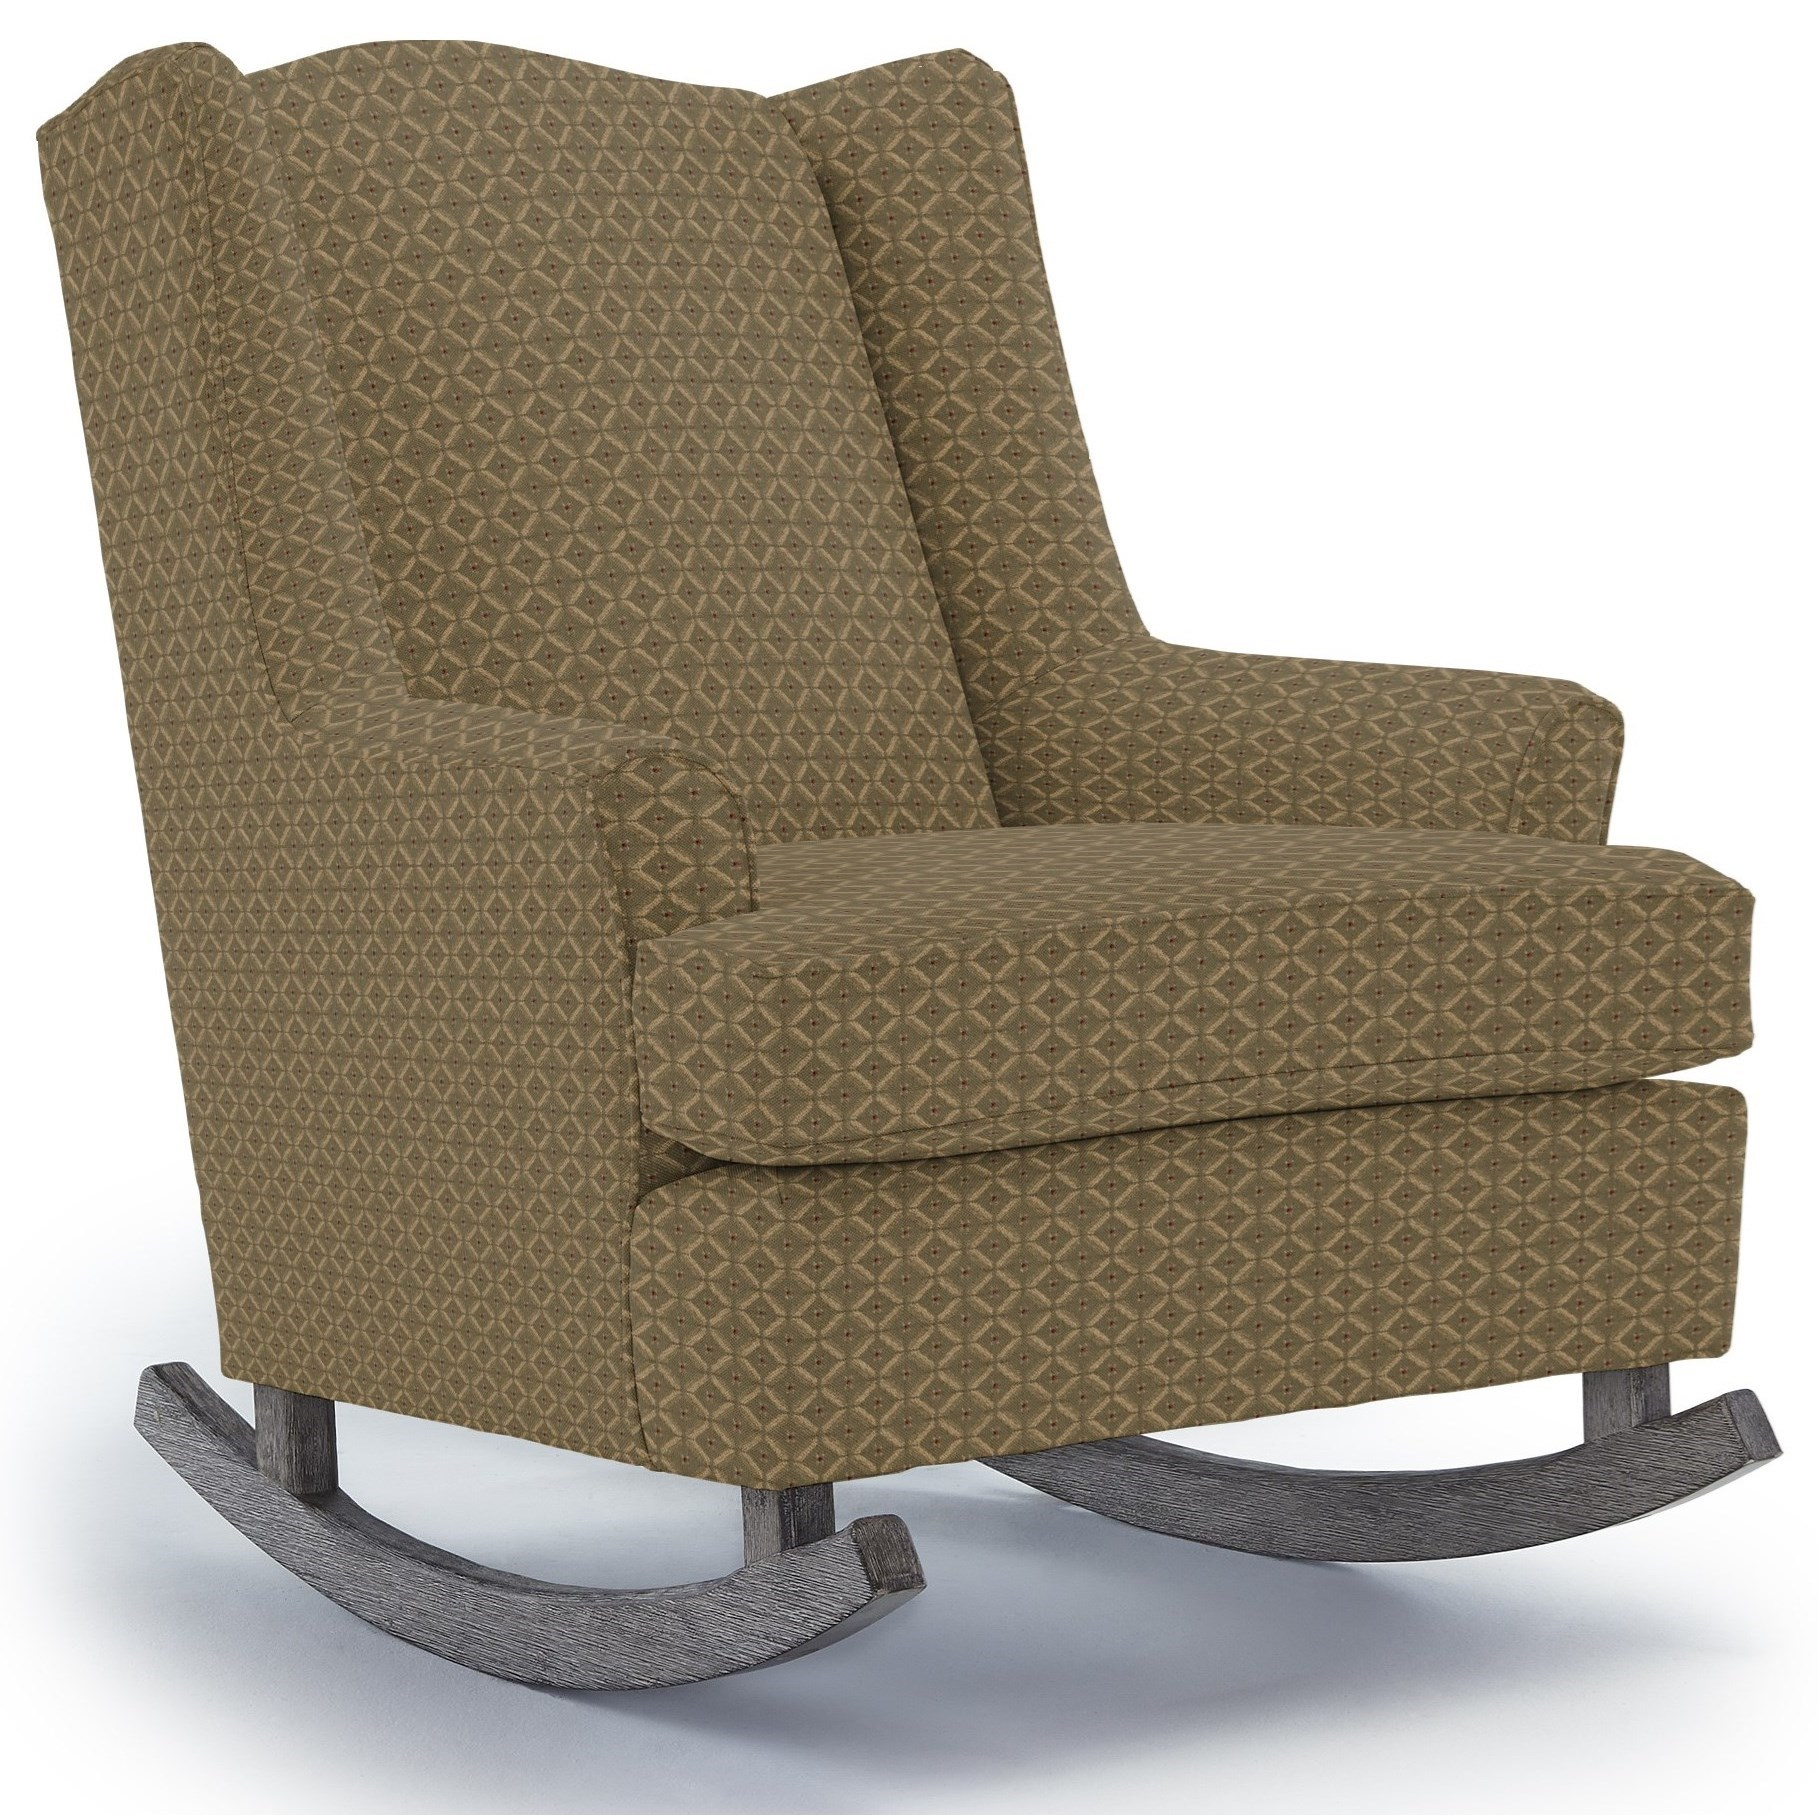 Runner Rockers Willow Rocking Chair by Best Home Furnishings at Reid's Furniture